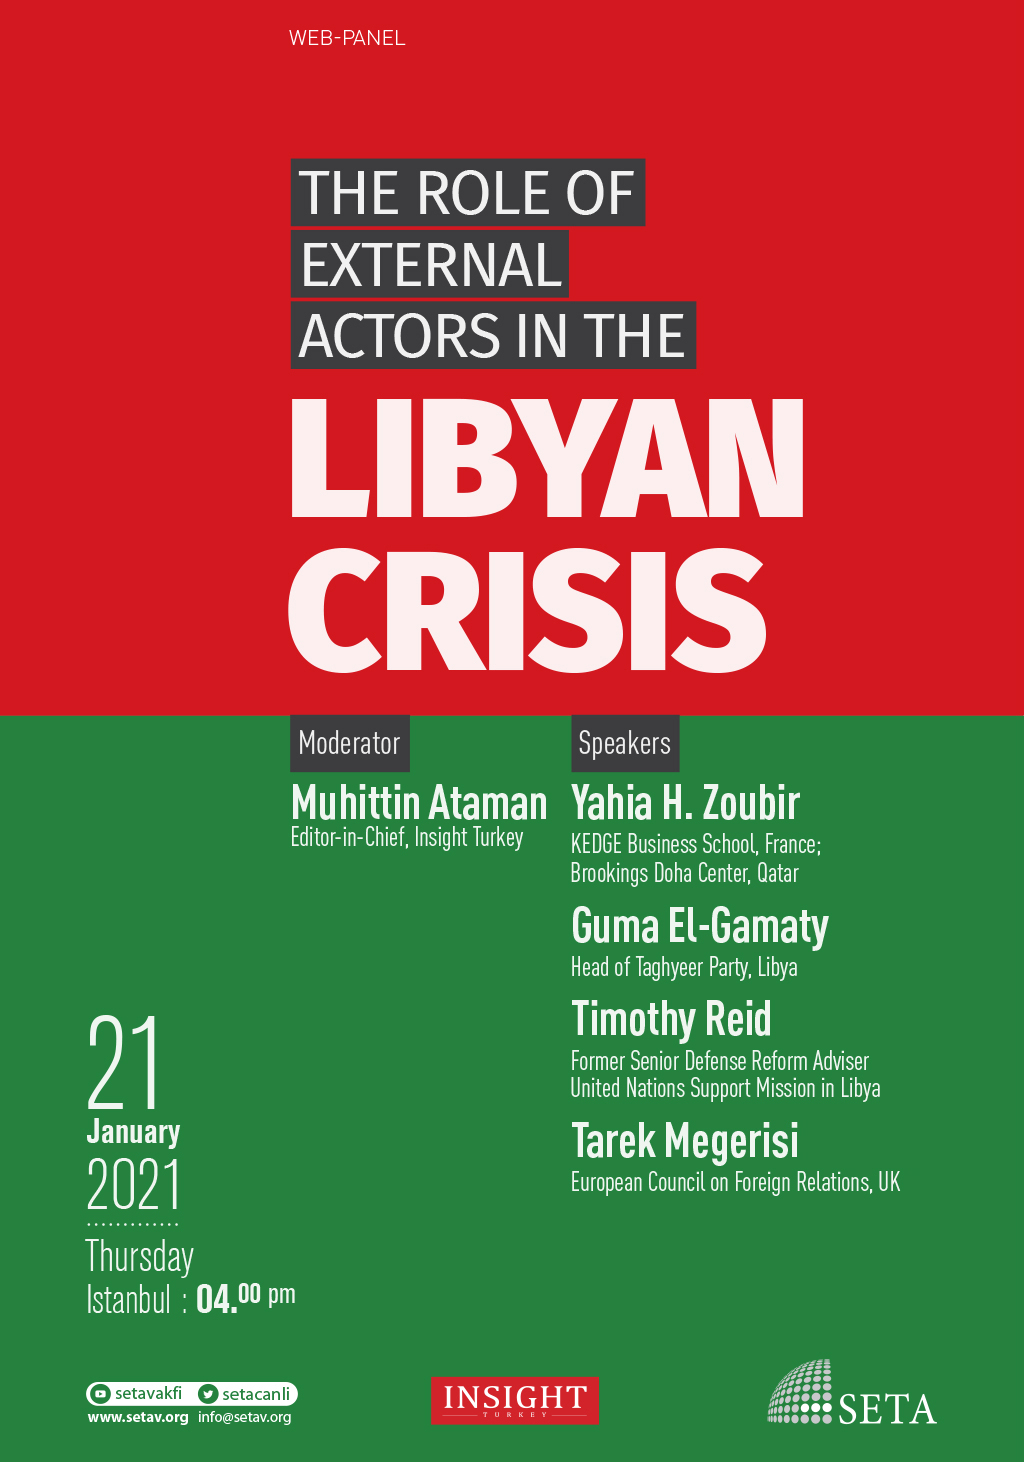 Web Panel: The Role of External Actors in the Libyan Crisis